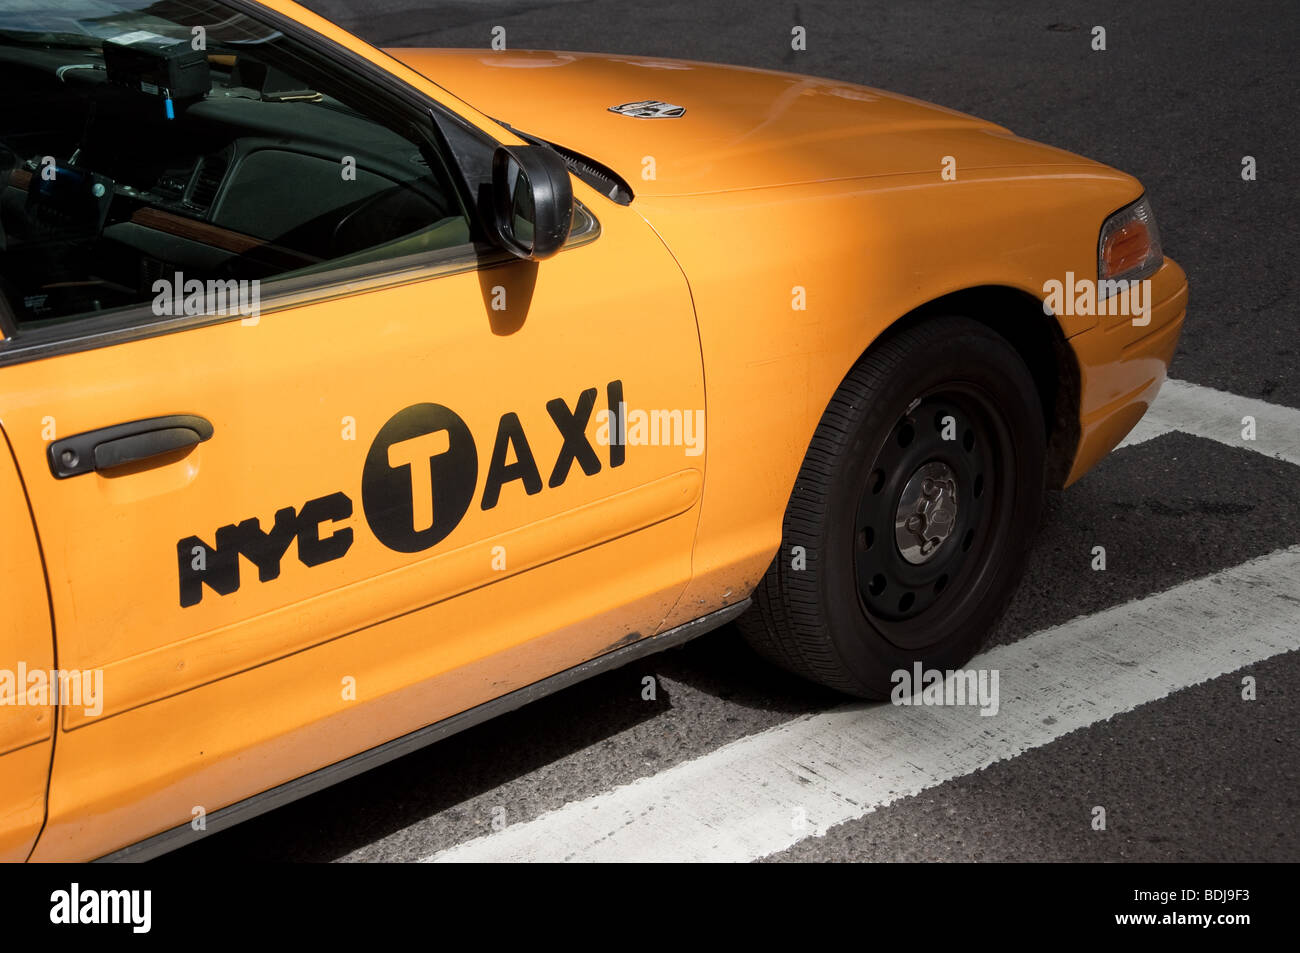 NYC Taxi - Stock Image